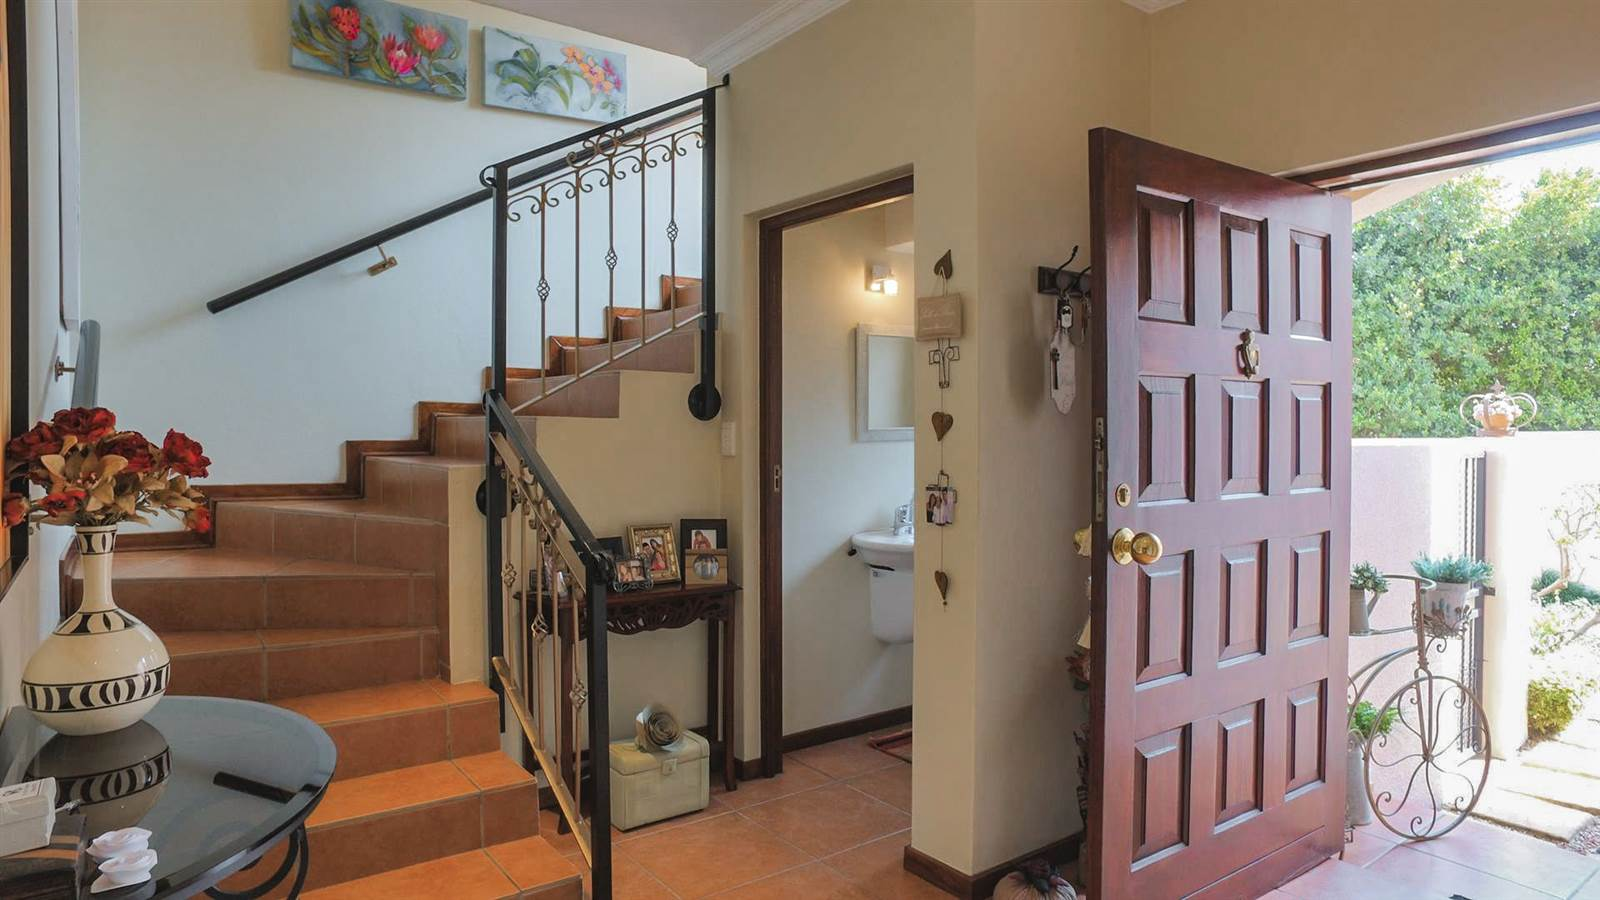 4 Bedroom Townhouse for sale in Mulbarton ENT0067436 : photo#10